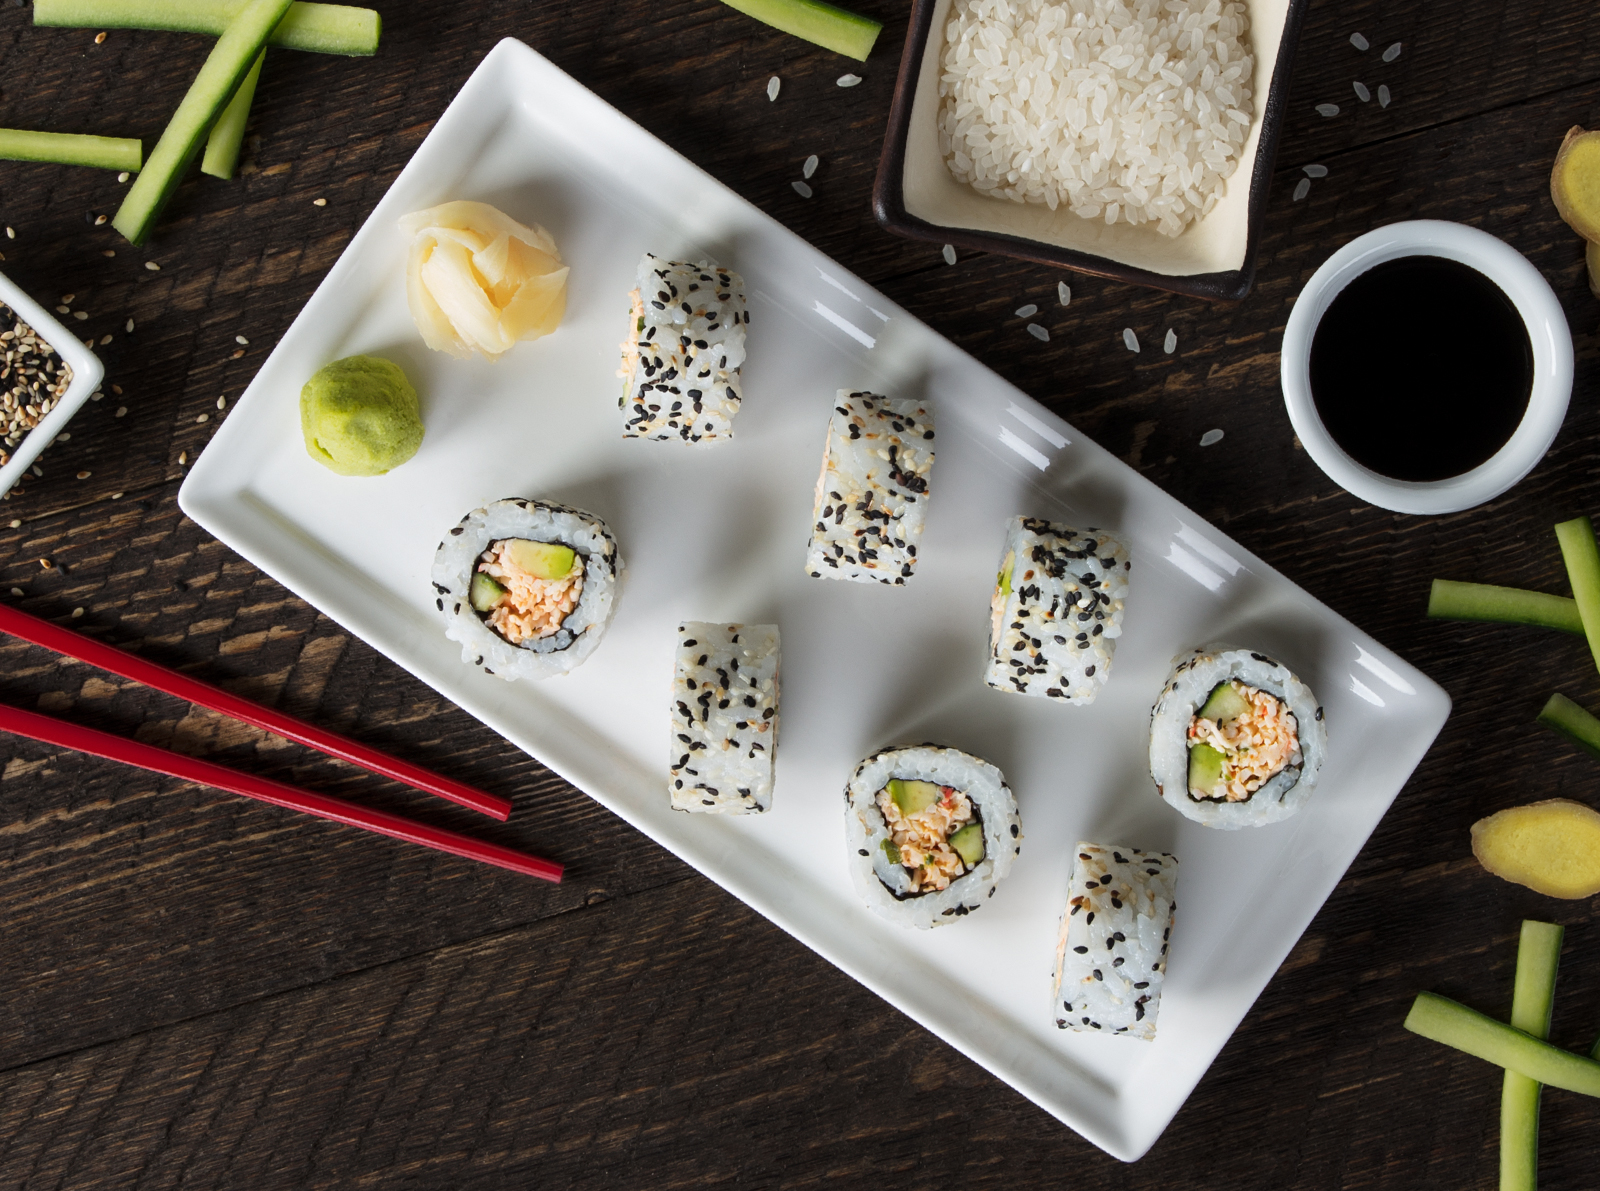 Free Sushi Day: Get FREE sushi at P.F. Chang's TODAY!